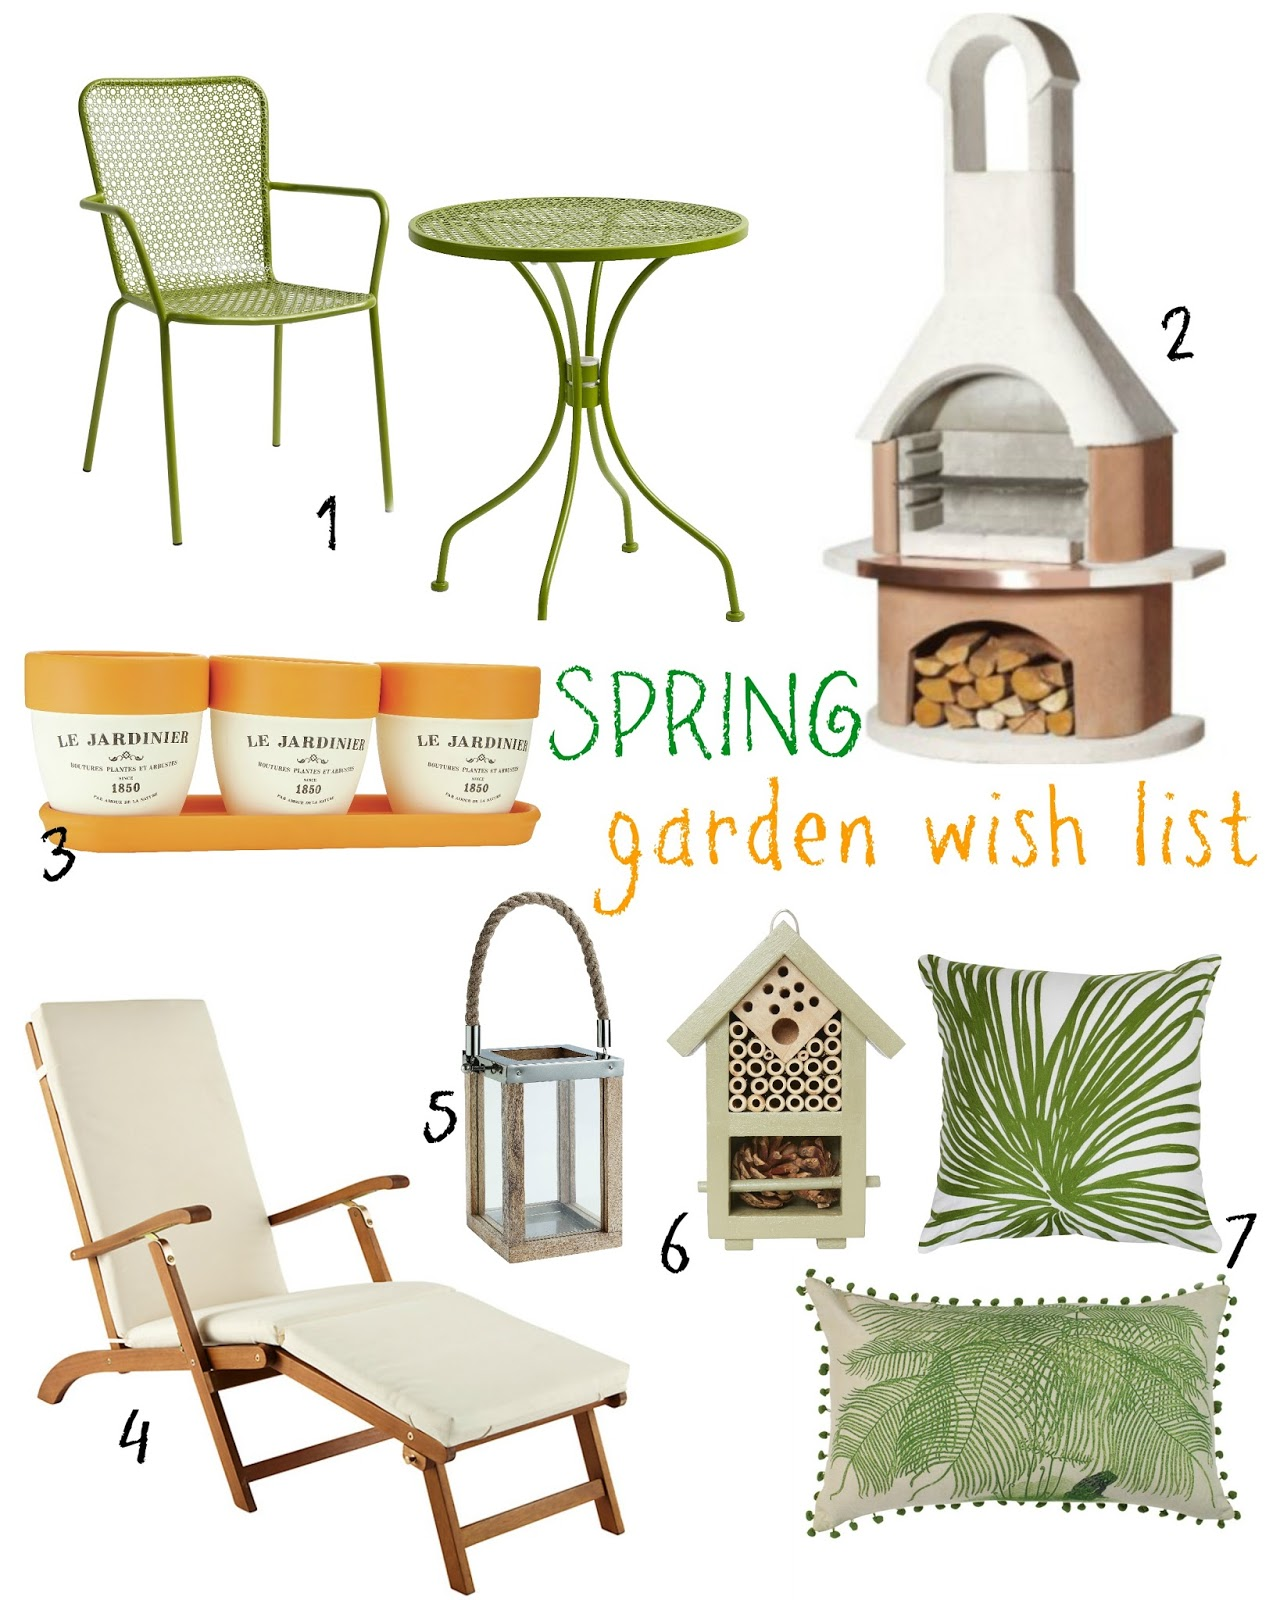 mamasVIB | V. I. BUYS: Getting the garden ready for Spring